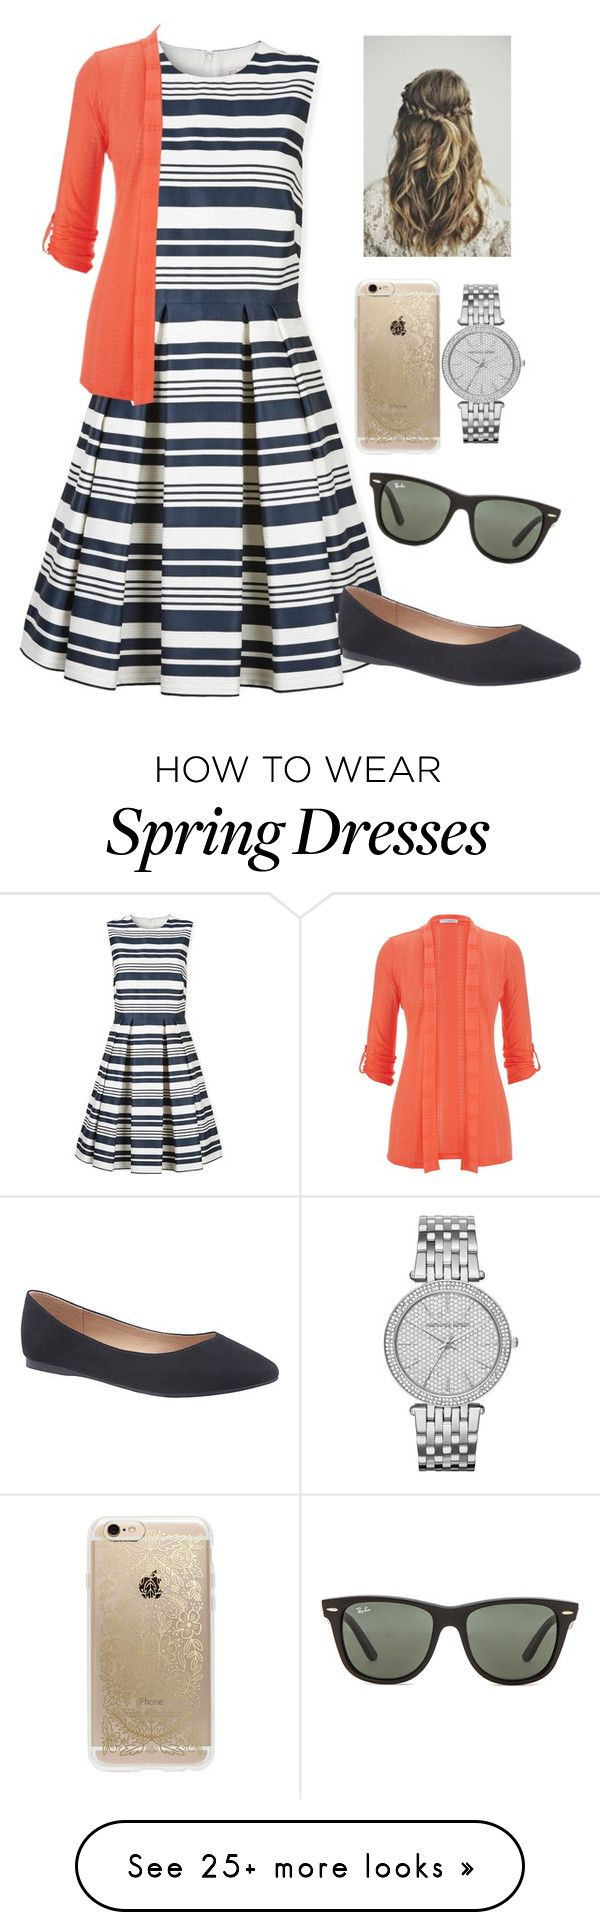 """Ready for Spring "" by jen1301 on Polyvore featuring RED Valentino, Lane Bryant, maurices, Rifle Paper Co, Michael Kors and Ray-Ban"